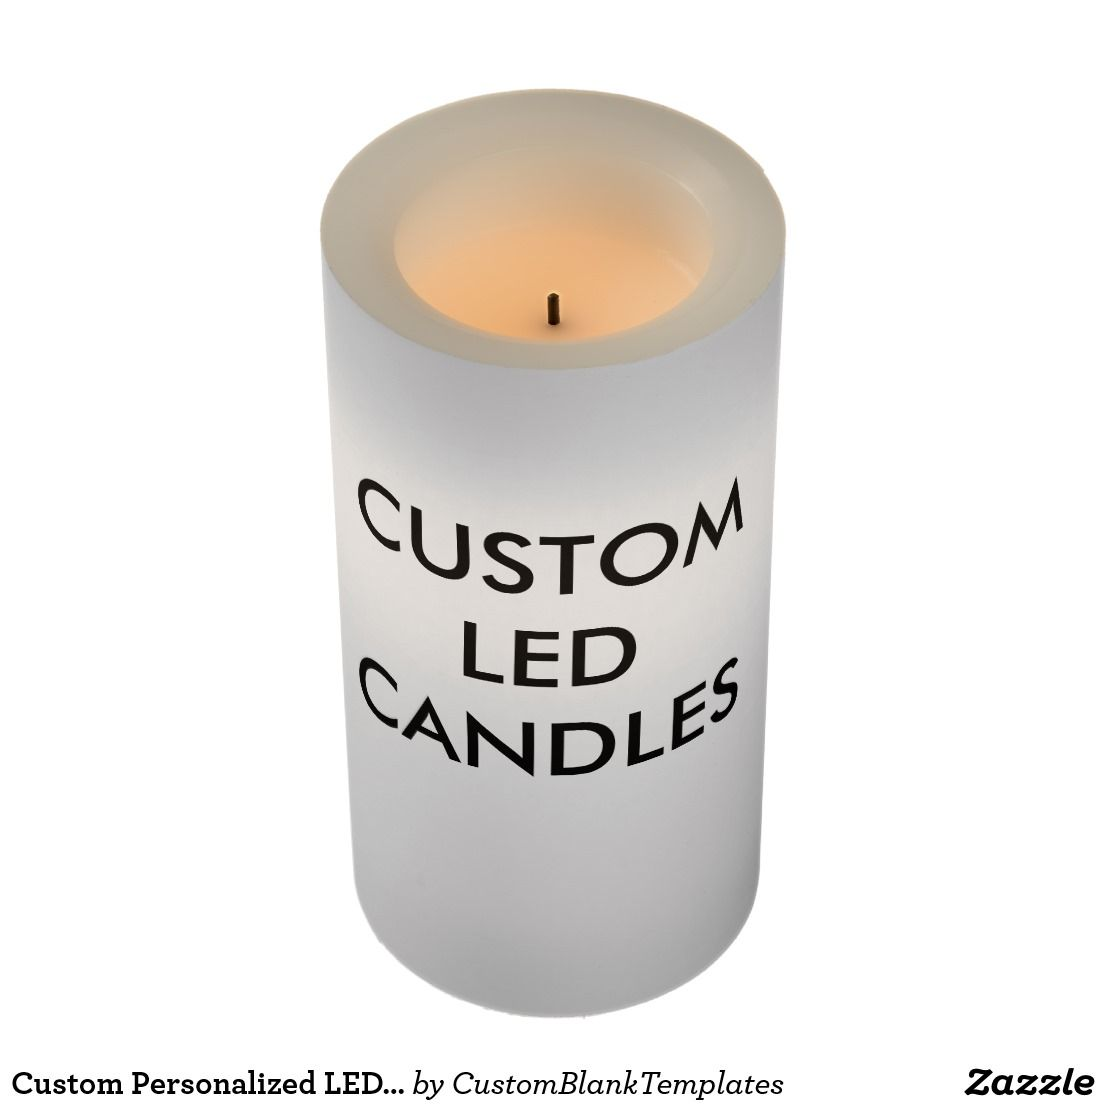 Personalized LED Candle Blank Template